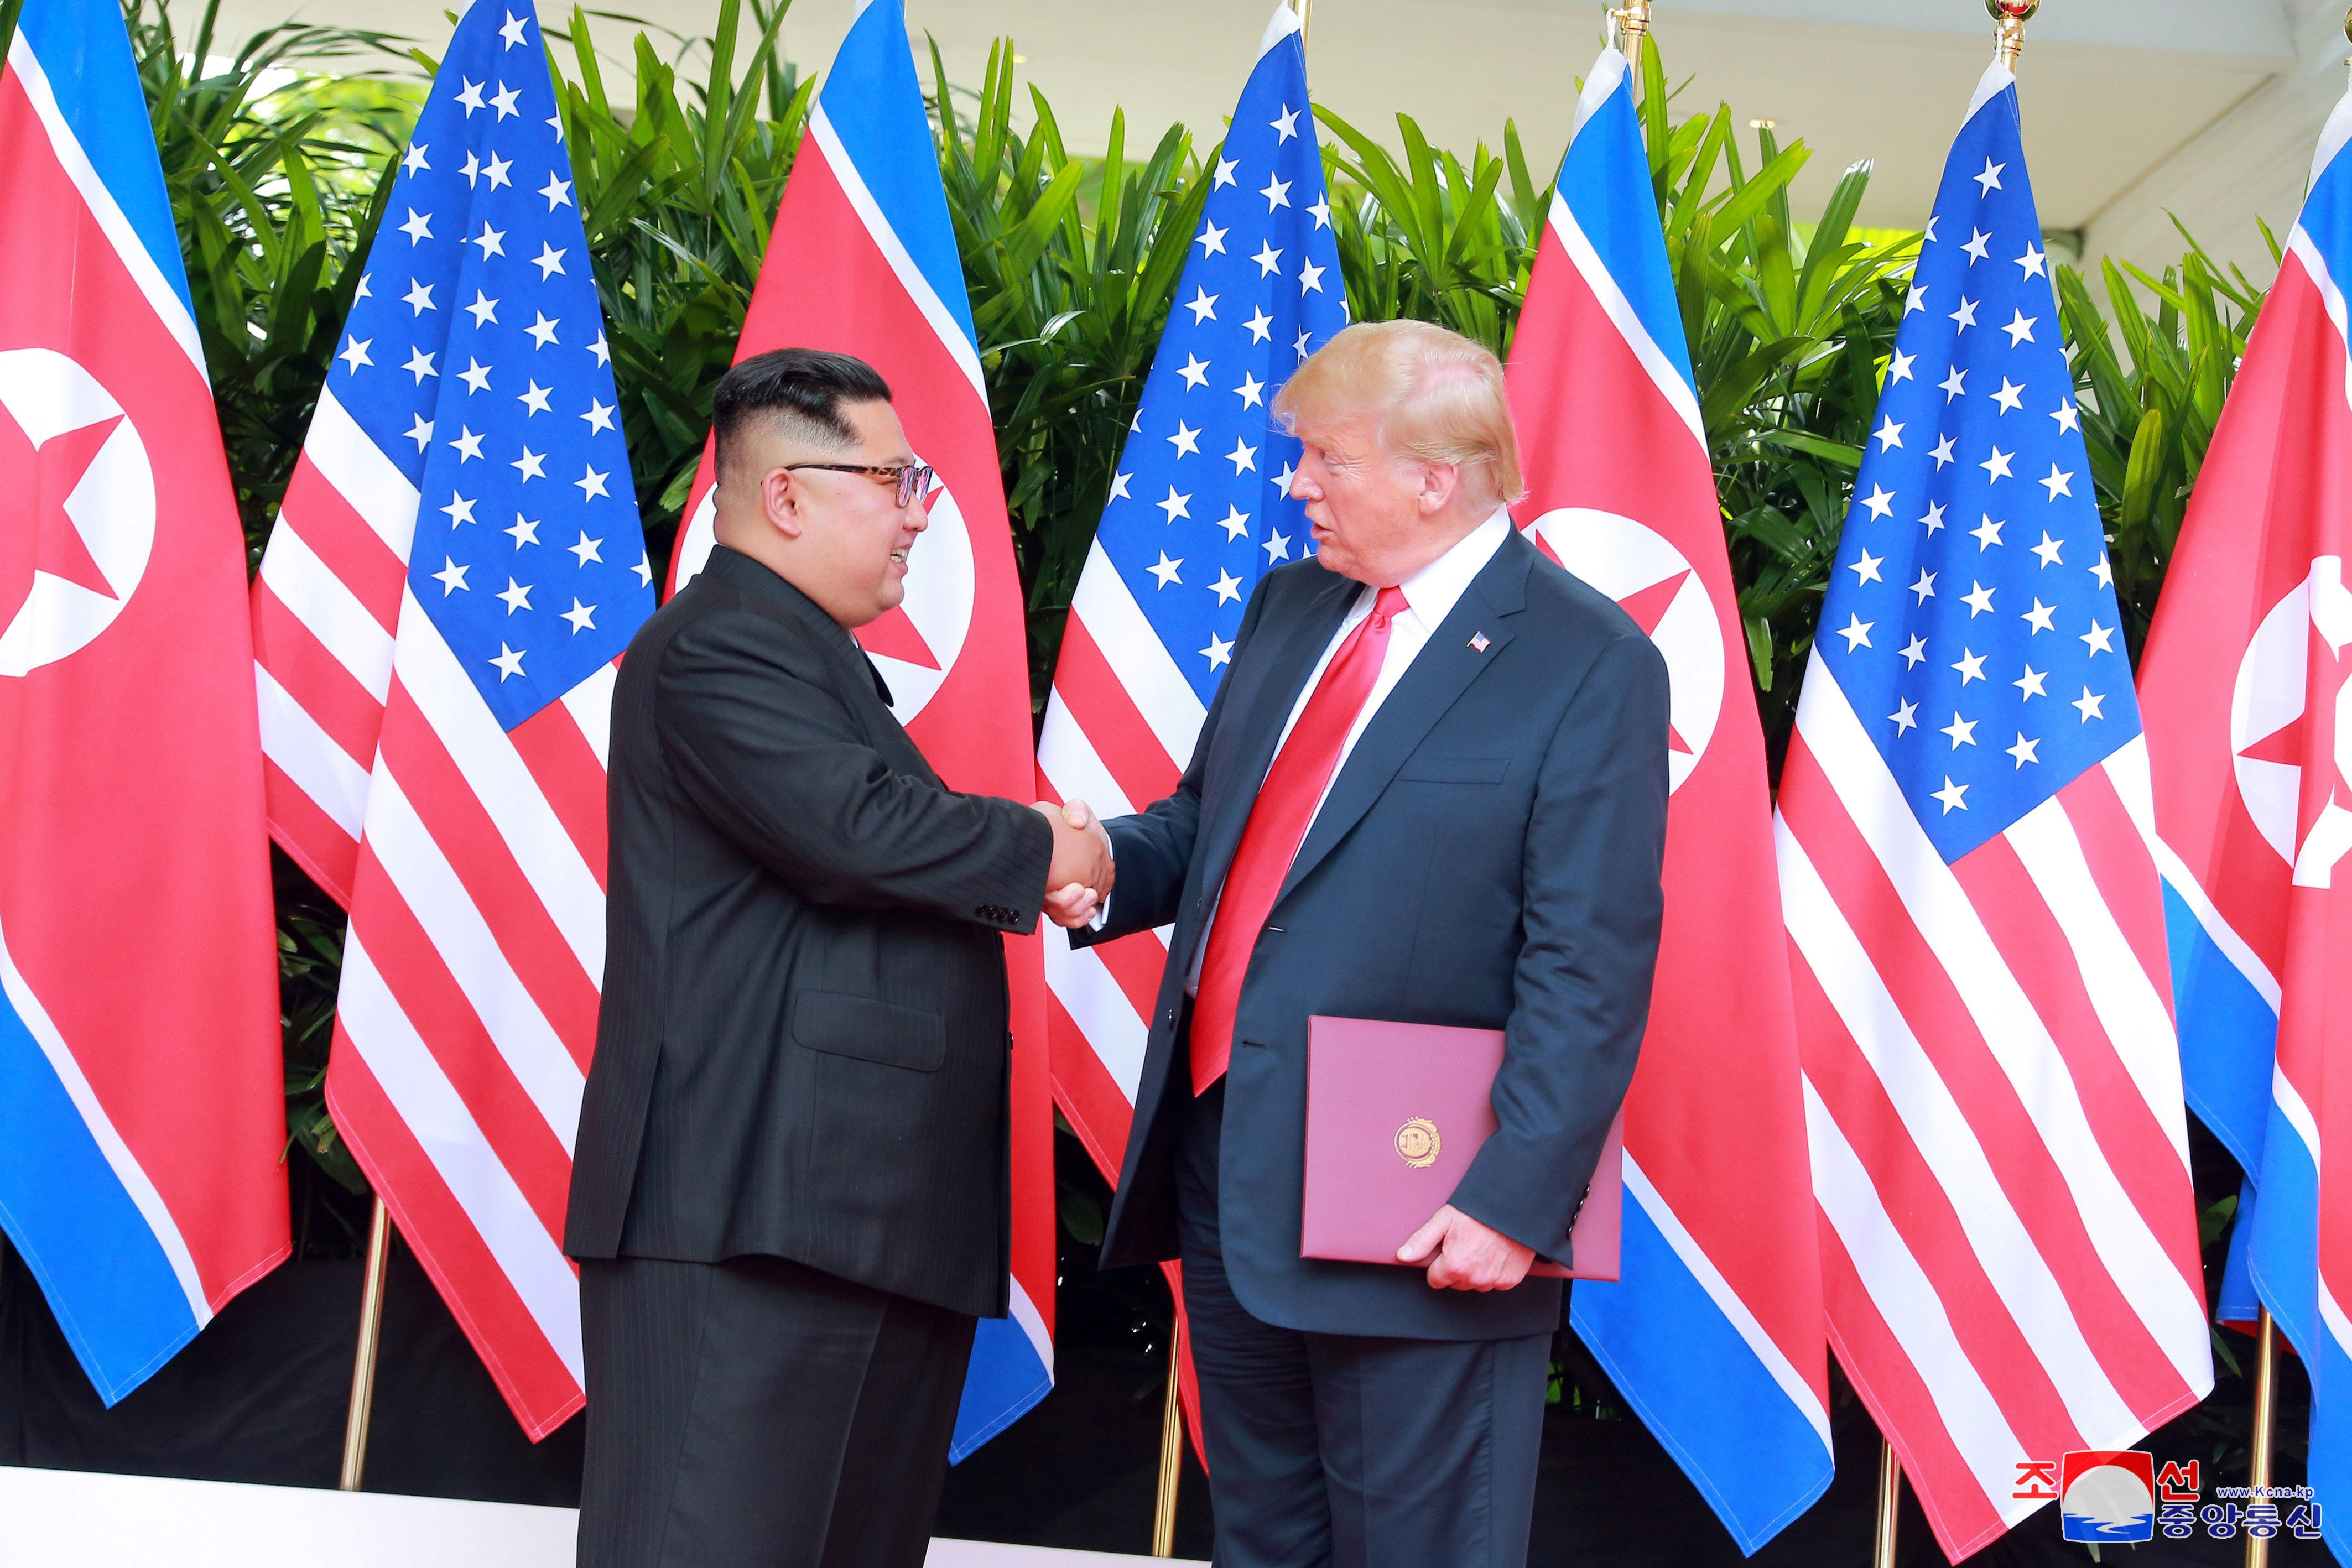 U.S. President Donald Trump shakes hands with North Korean leader Kim Jong Un at the Capella Hotel on Sentosa island in Singa